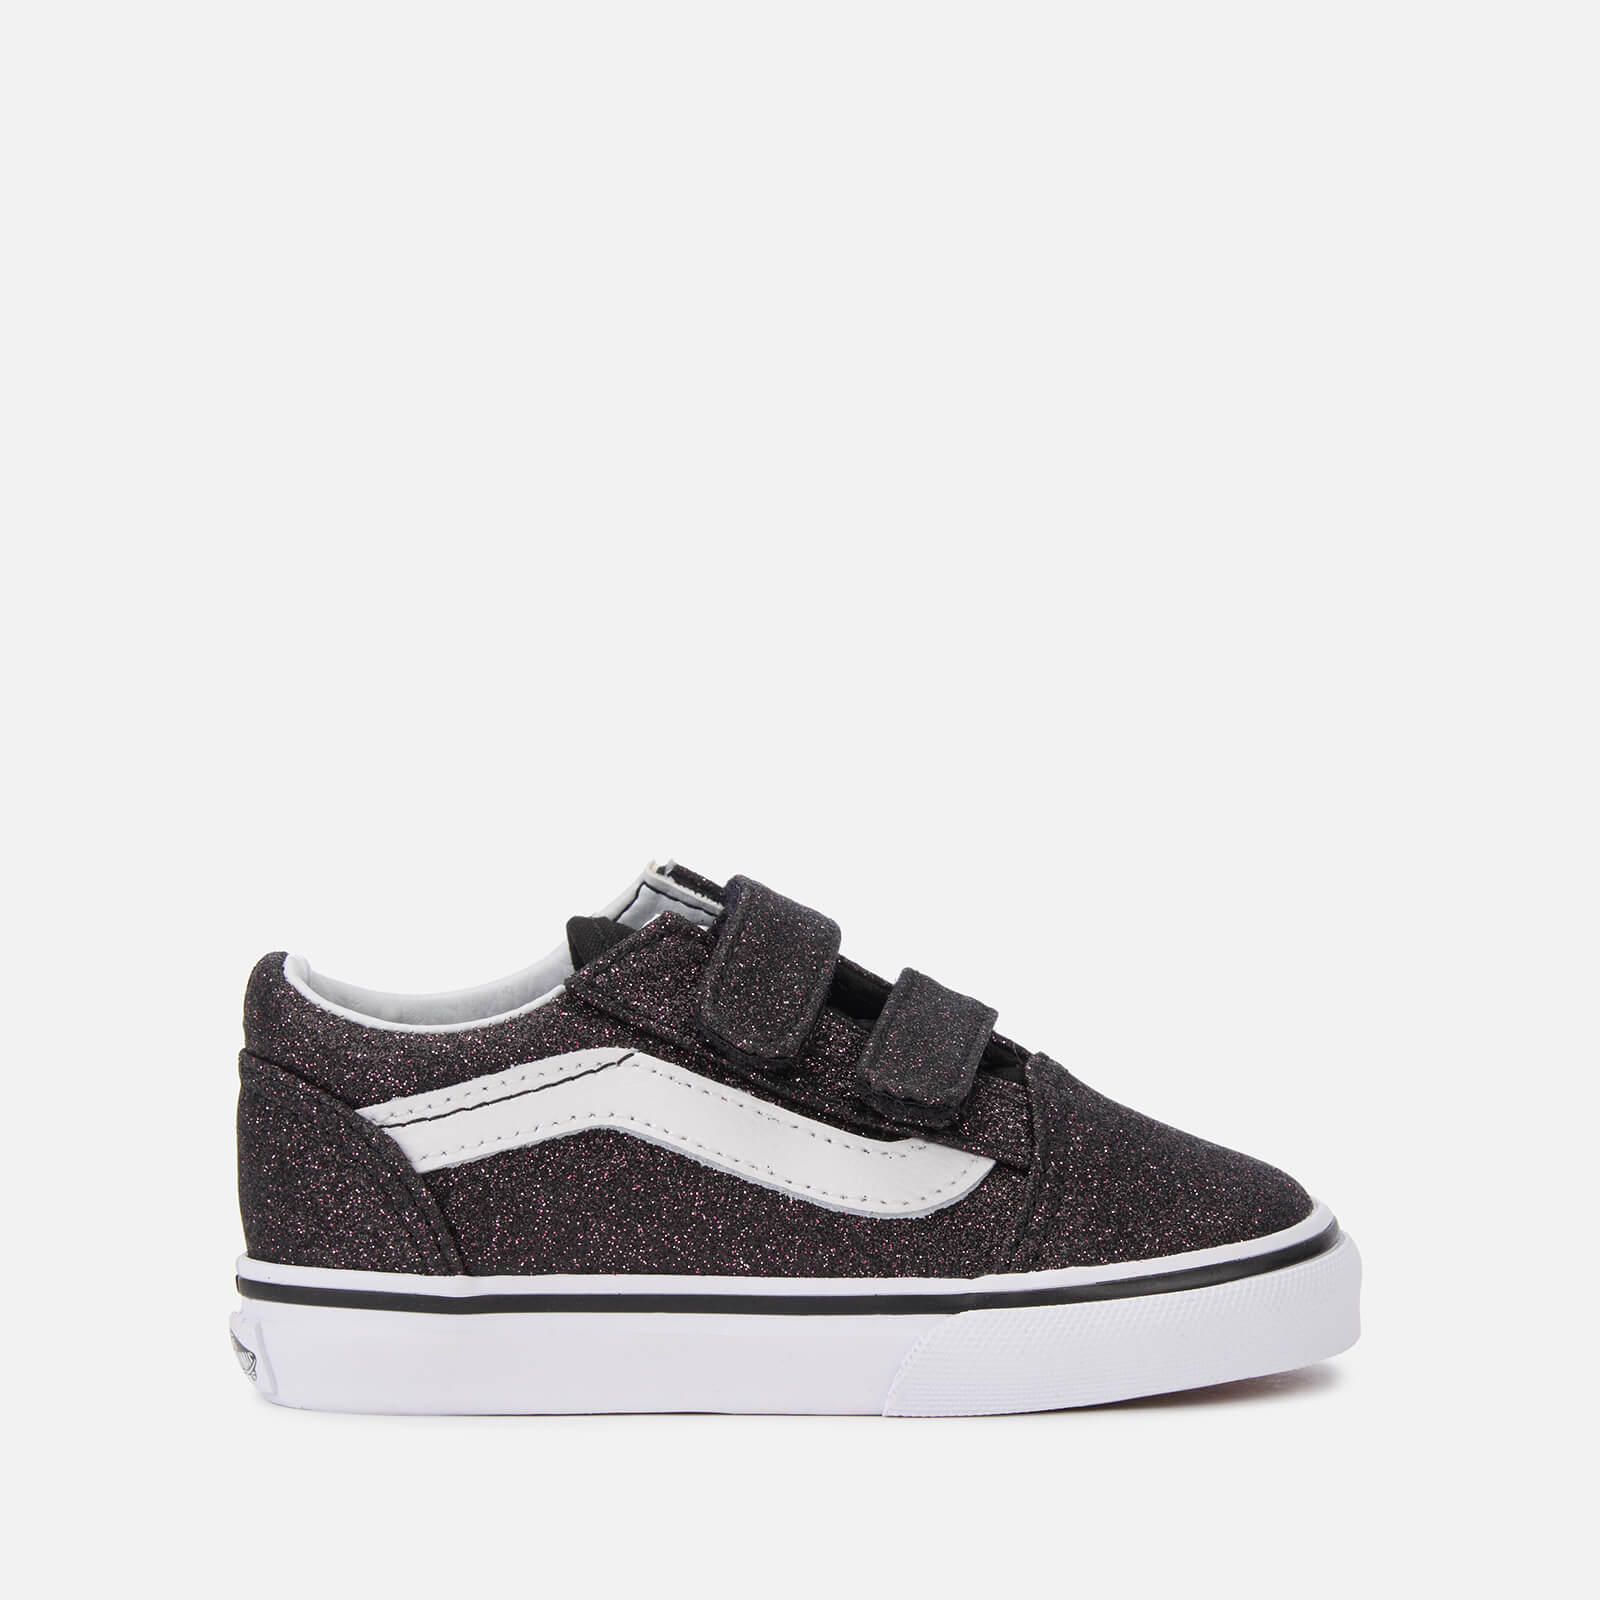 dcec2d56fb Vans Toddlers' Glitter Stars Old Skool Velcro Trainers - Black/True White  Junior Clothing | TheHut.com